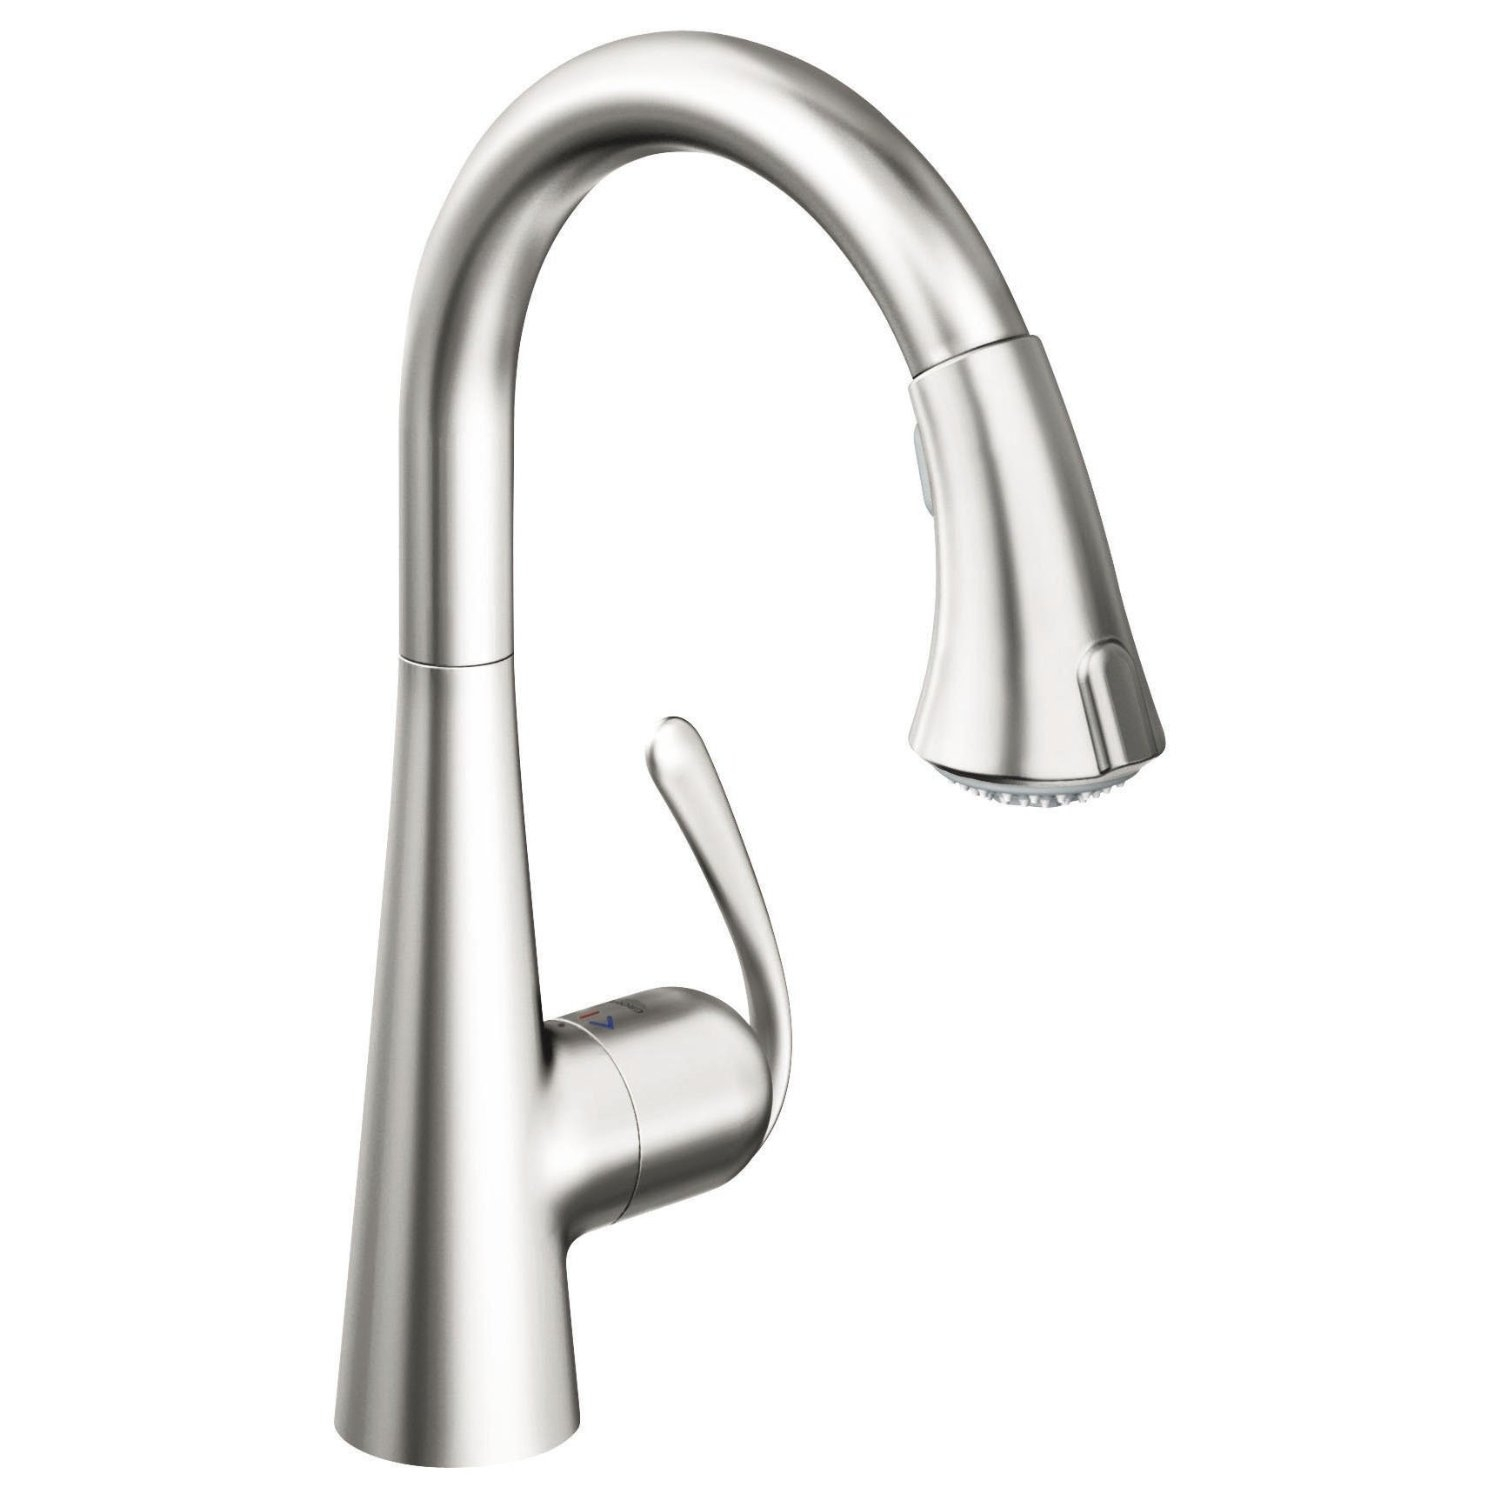 Ideas, grohe kitchen faucet reviews bestfaucetshub for measurements 1500 x 1500  .